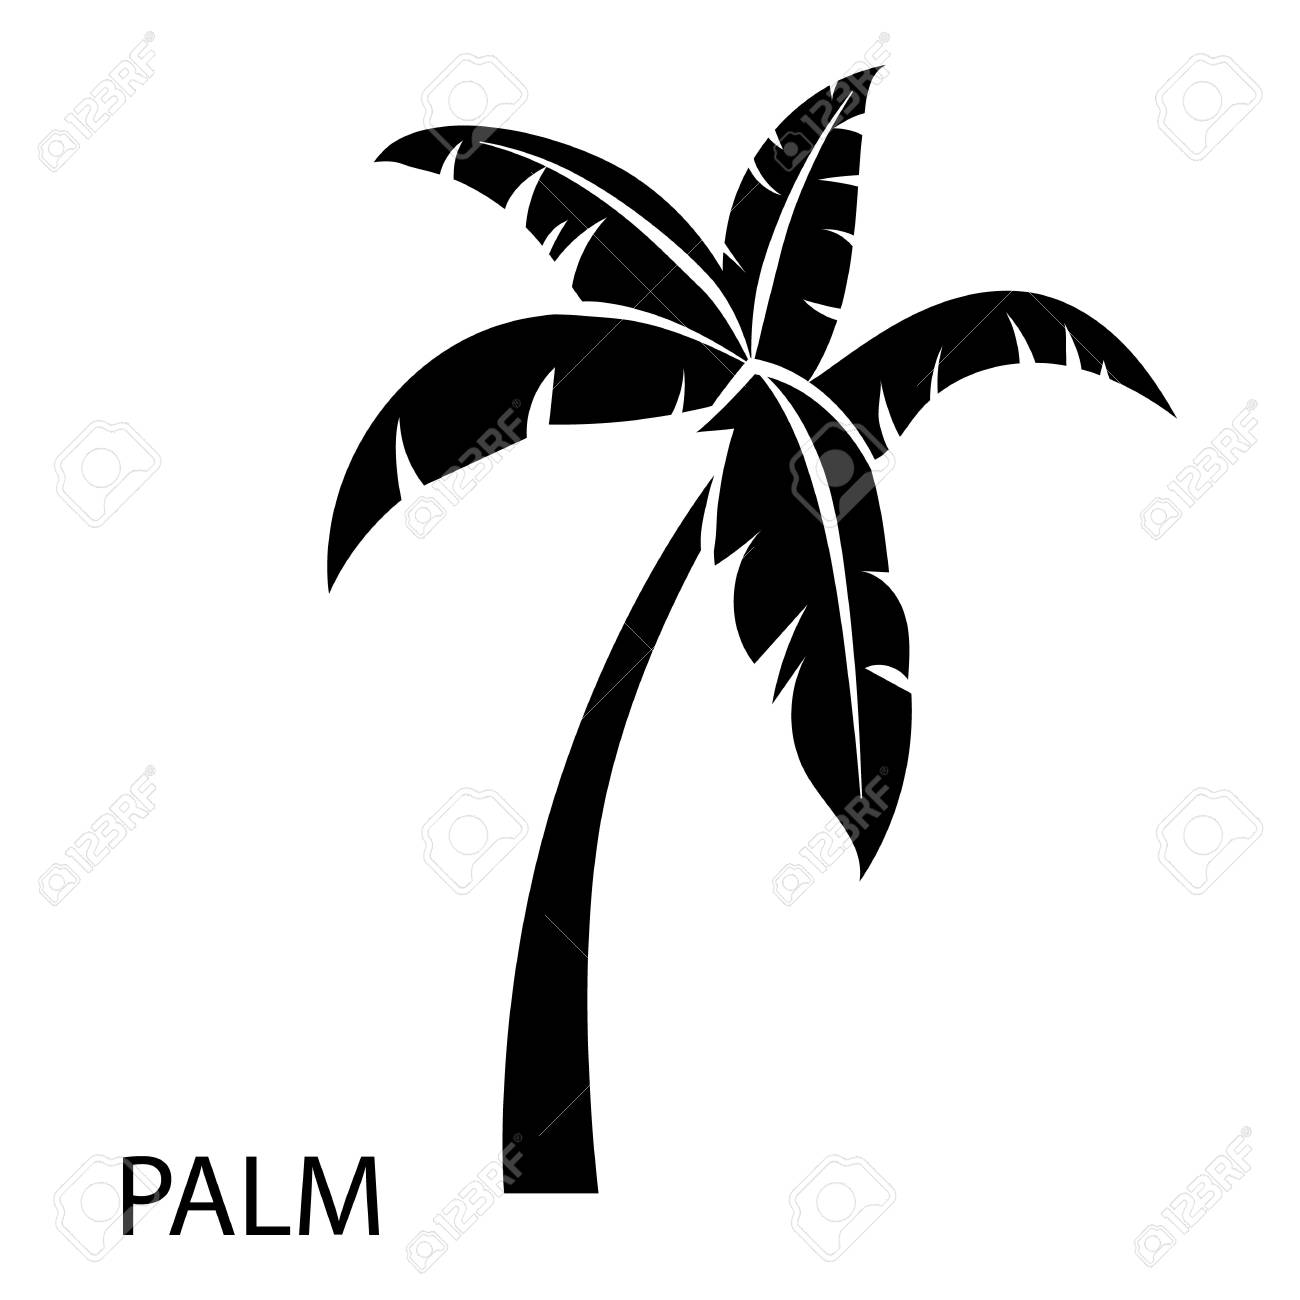 palm tree icon simple illustration of palm tree vector icon rh 123rf com palm tree vector image palm tree vector free